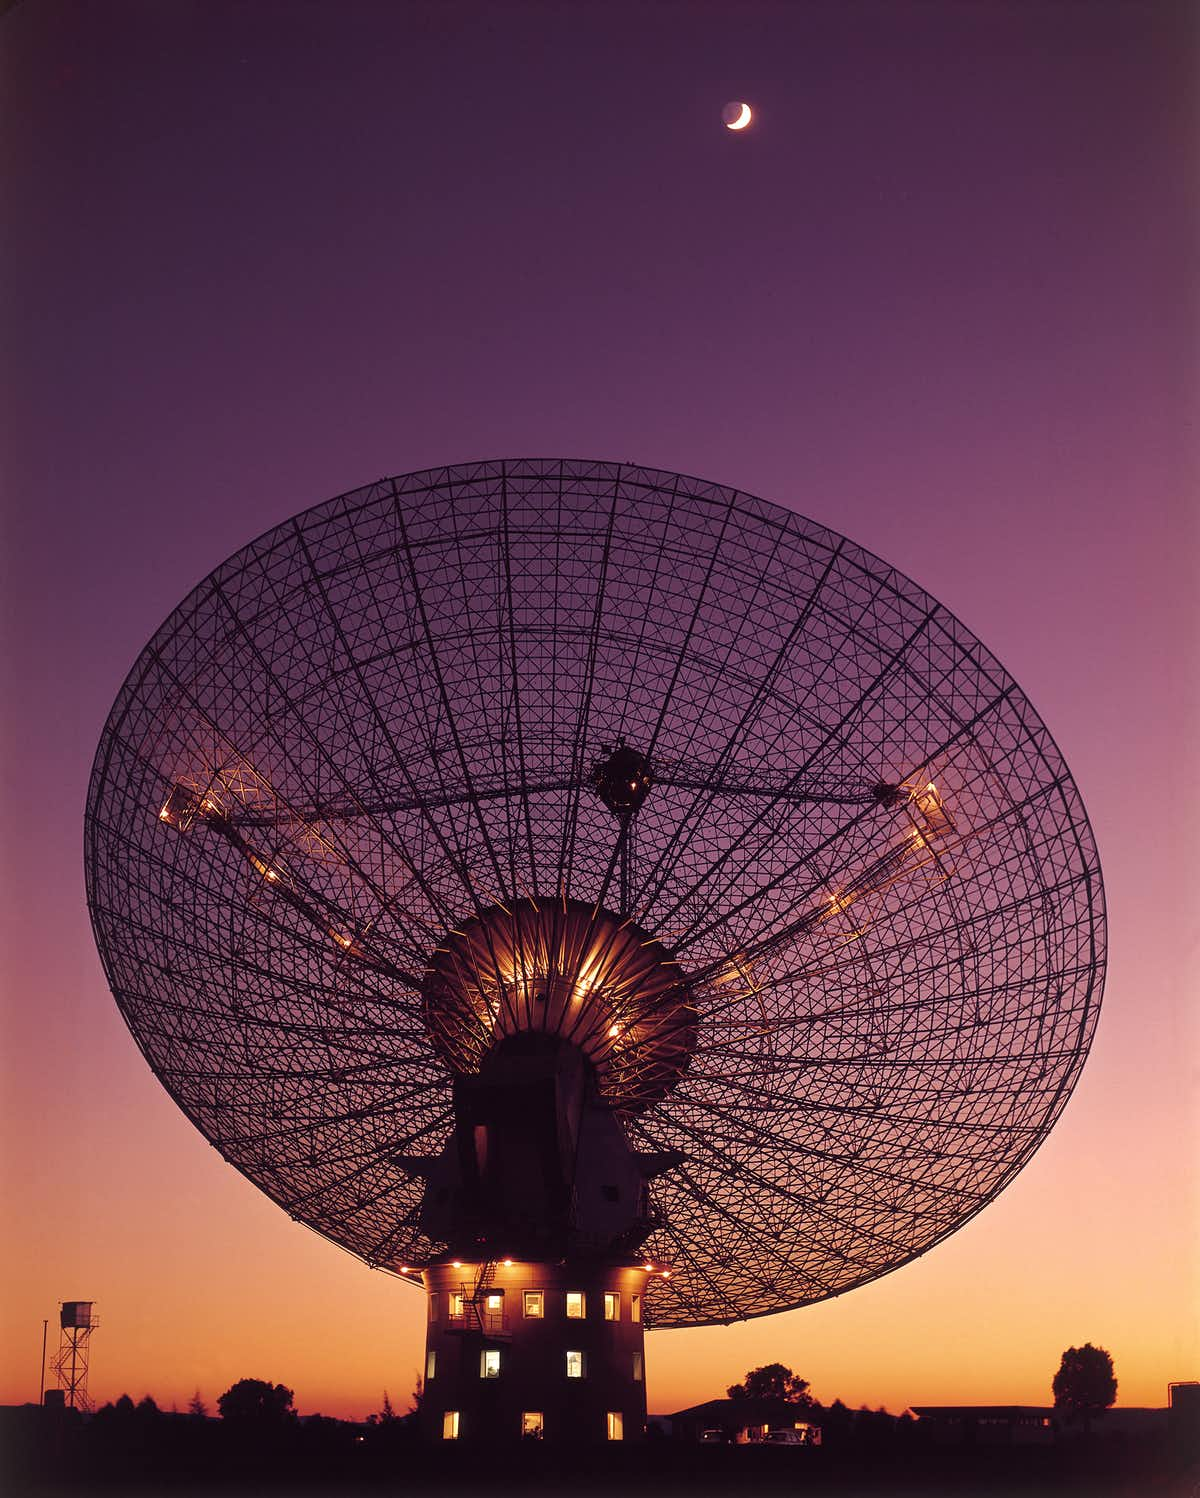 The Parkes dish with Moon in 1969